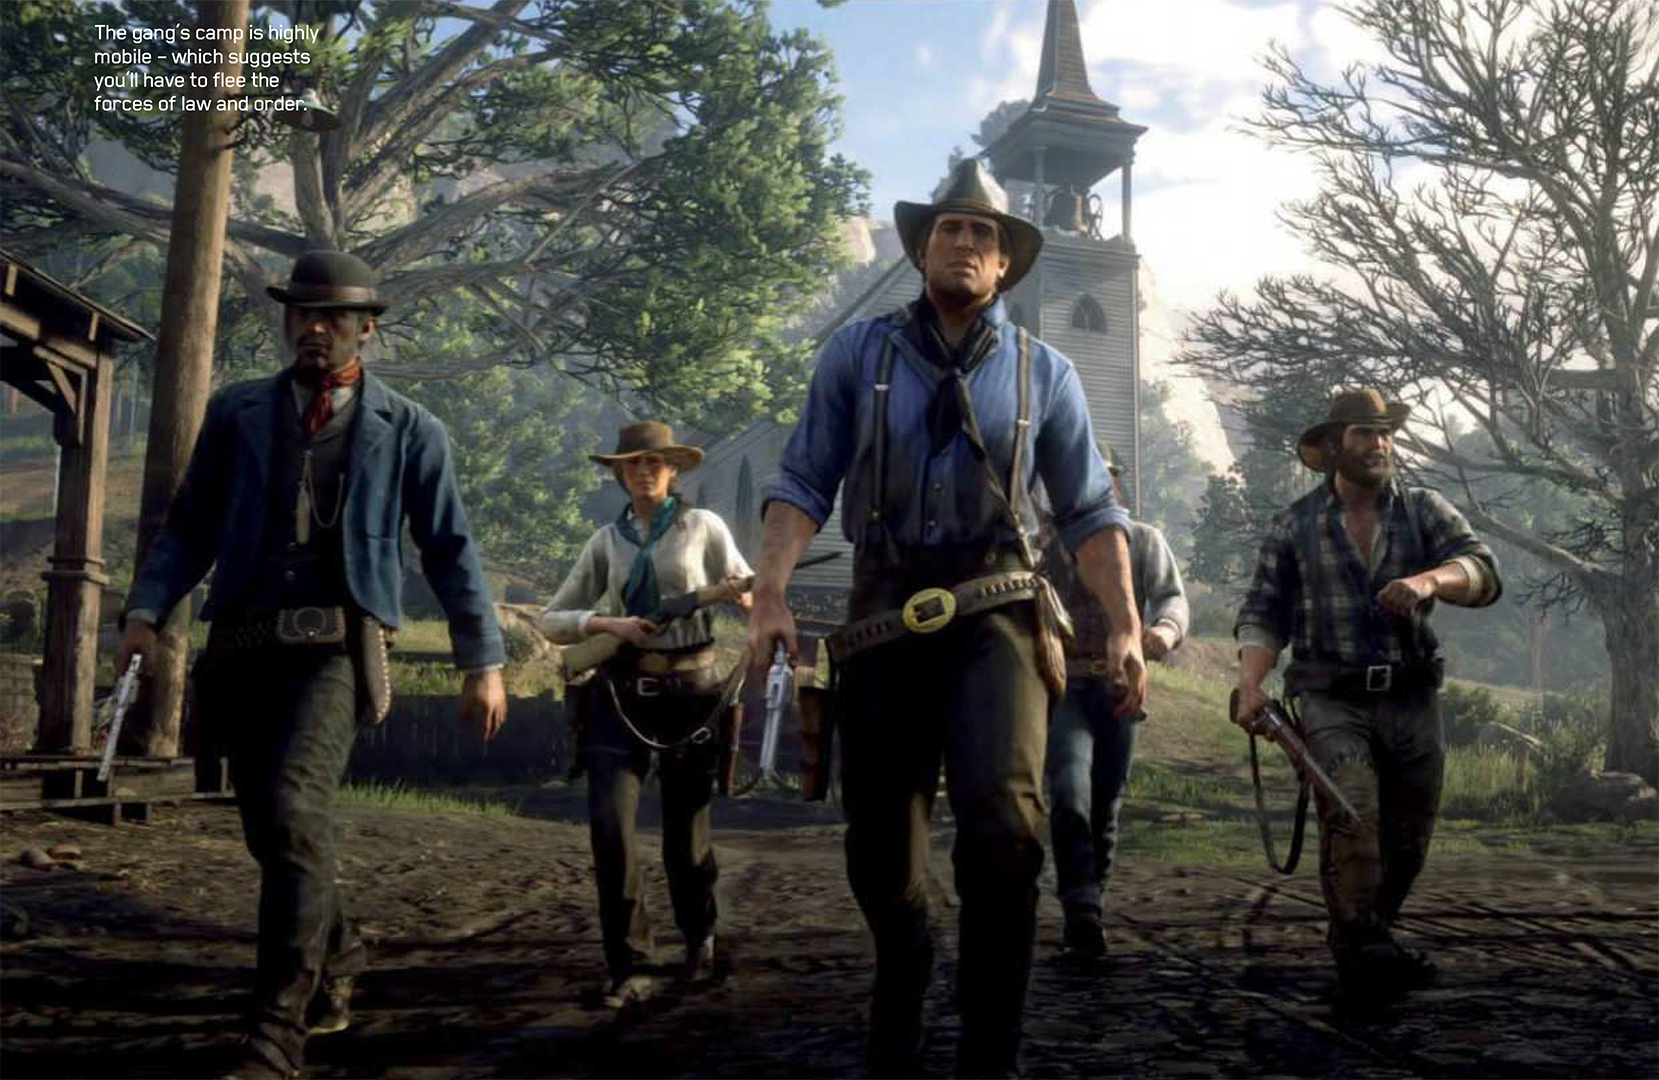 Arthur and the Gang Red Dead Redemption II